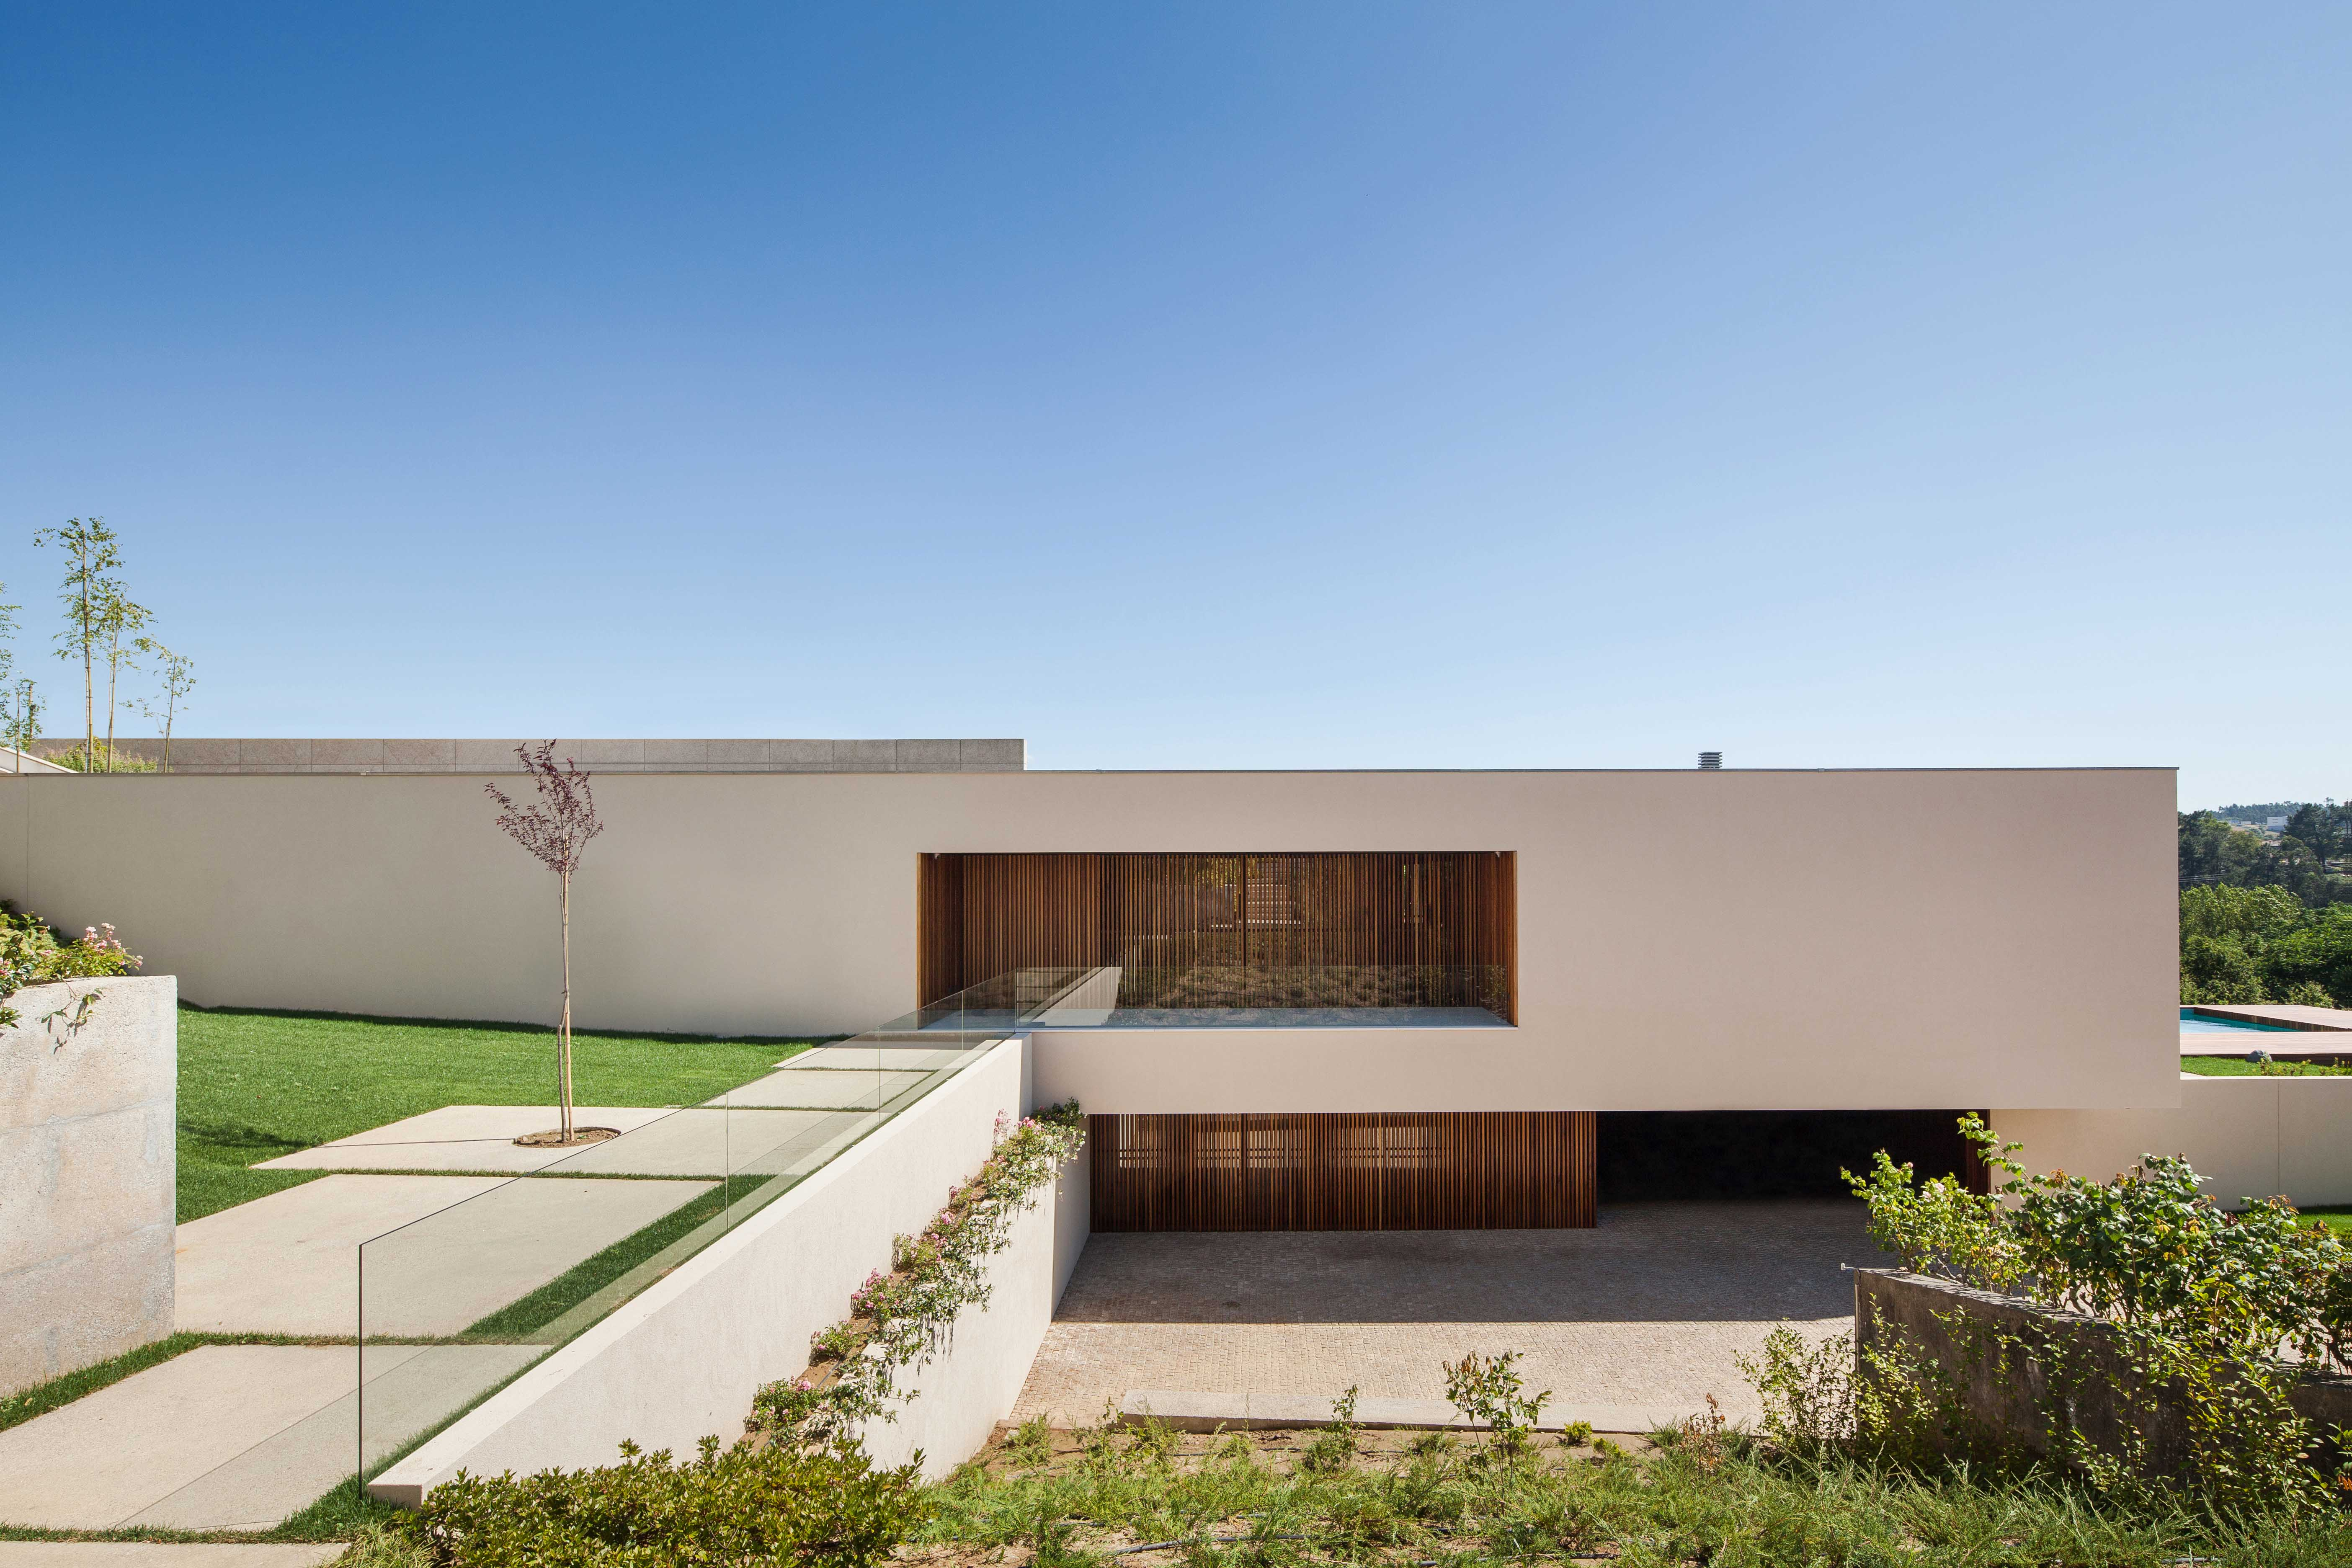 <b>Casa MG</b> Braga, Portugal | 2005 | 540.00 m2